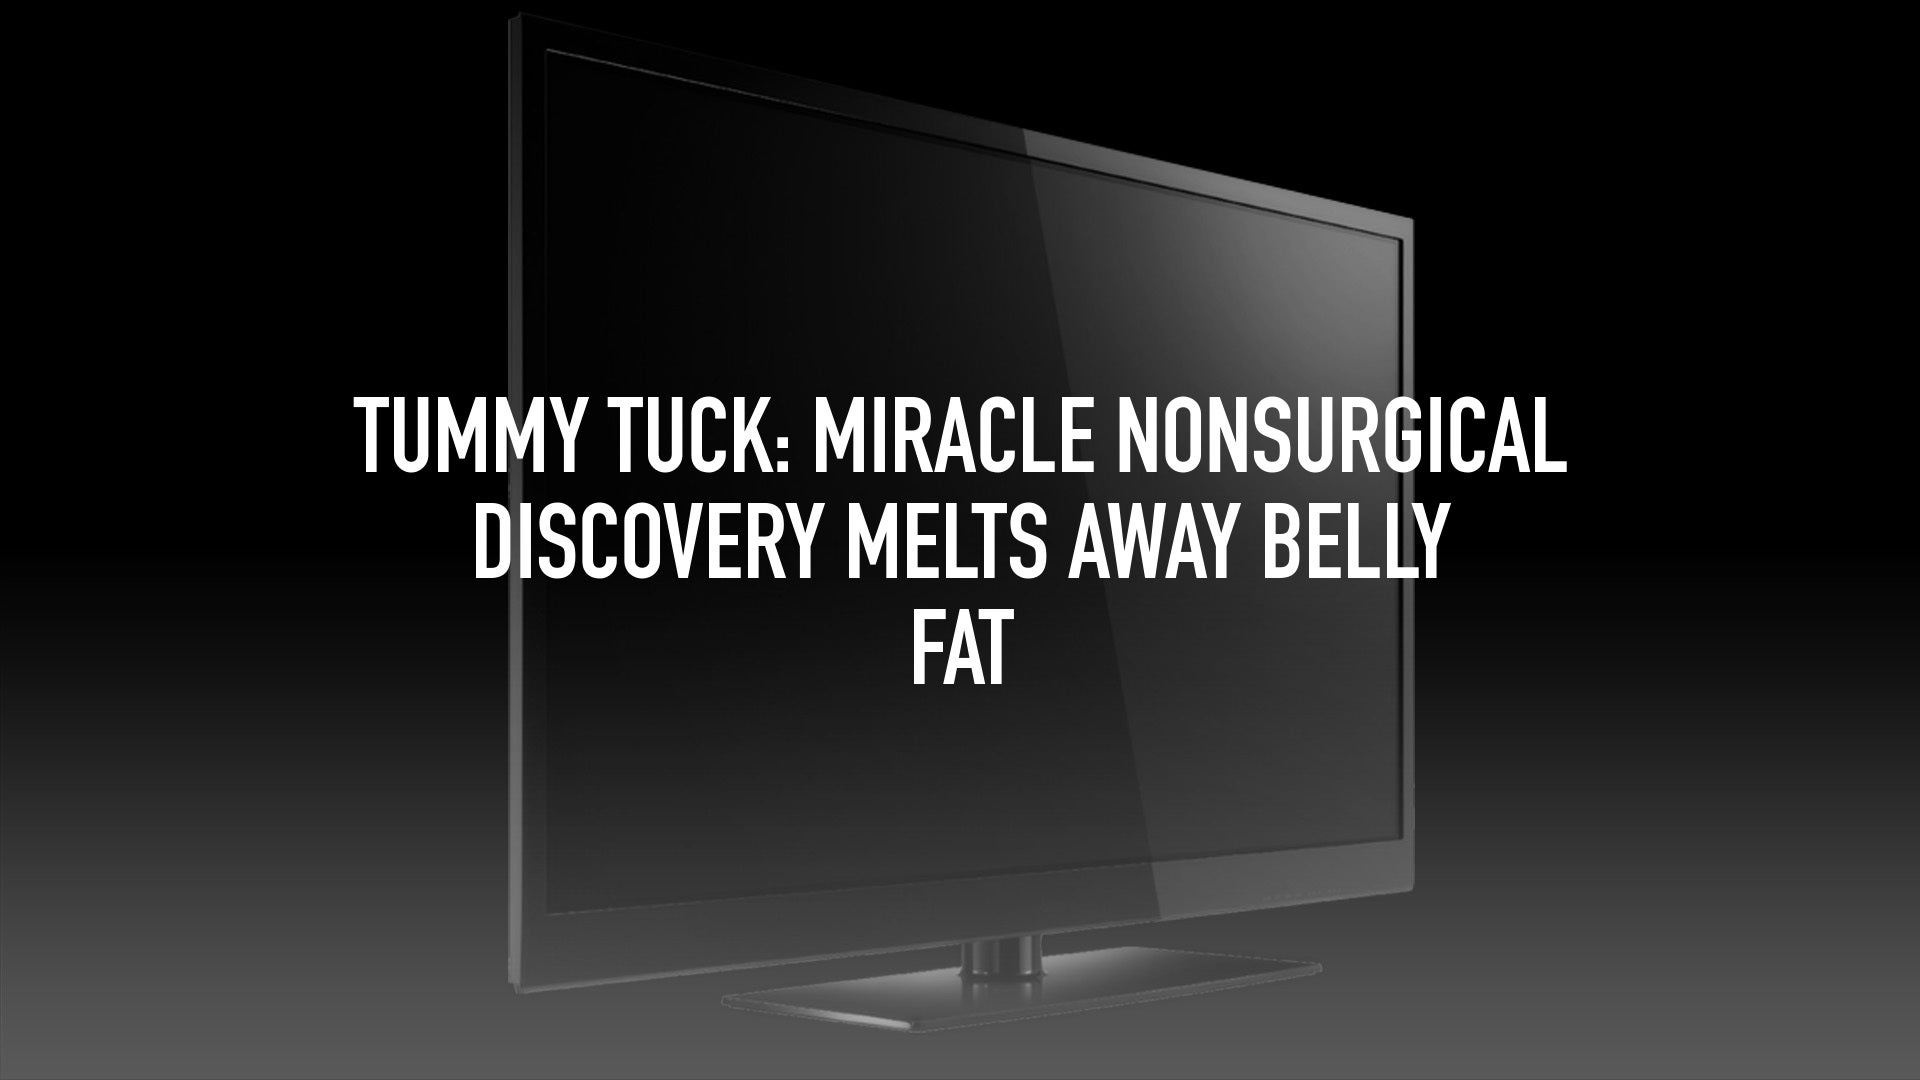 Tummy Tuck: Miracle Nonsurgical Discovery Melts Away Belly Fat